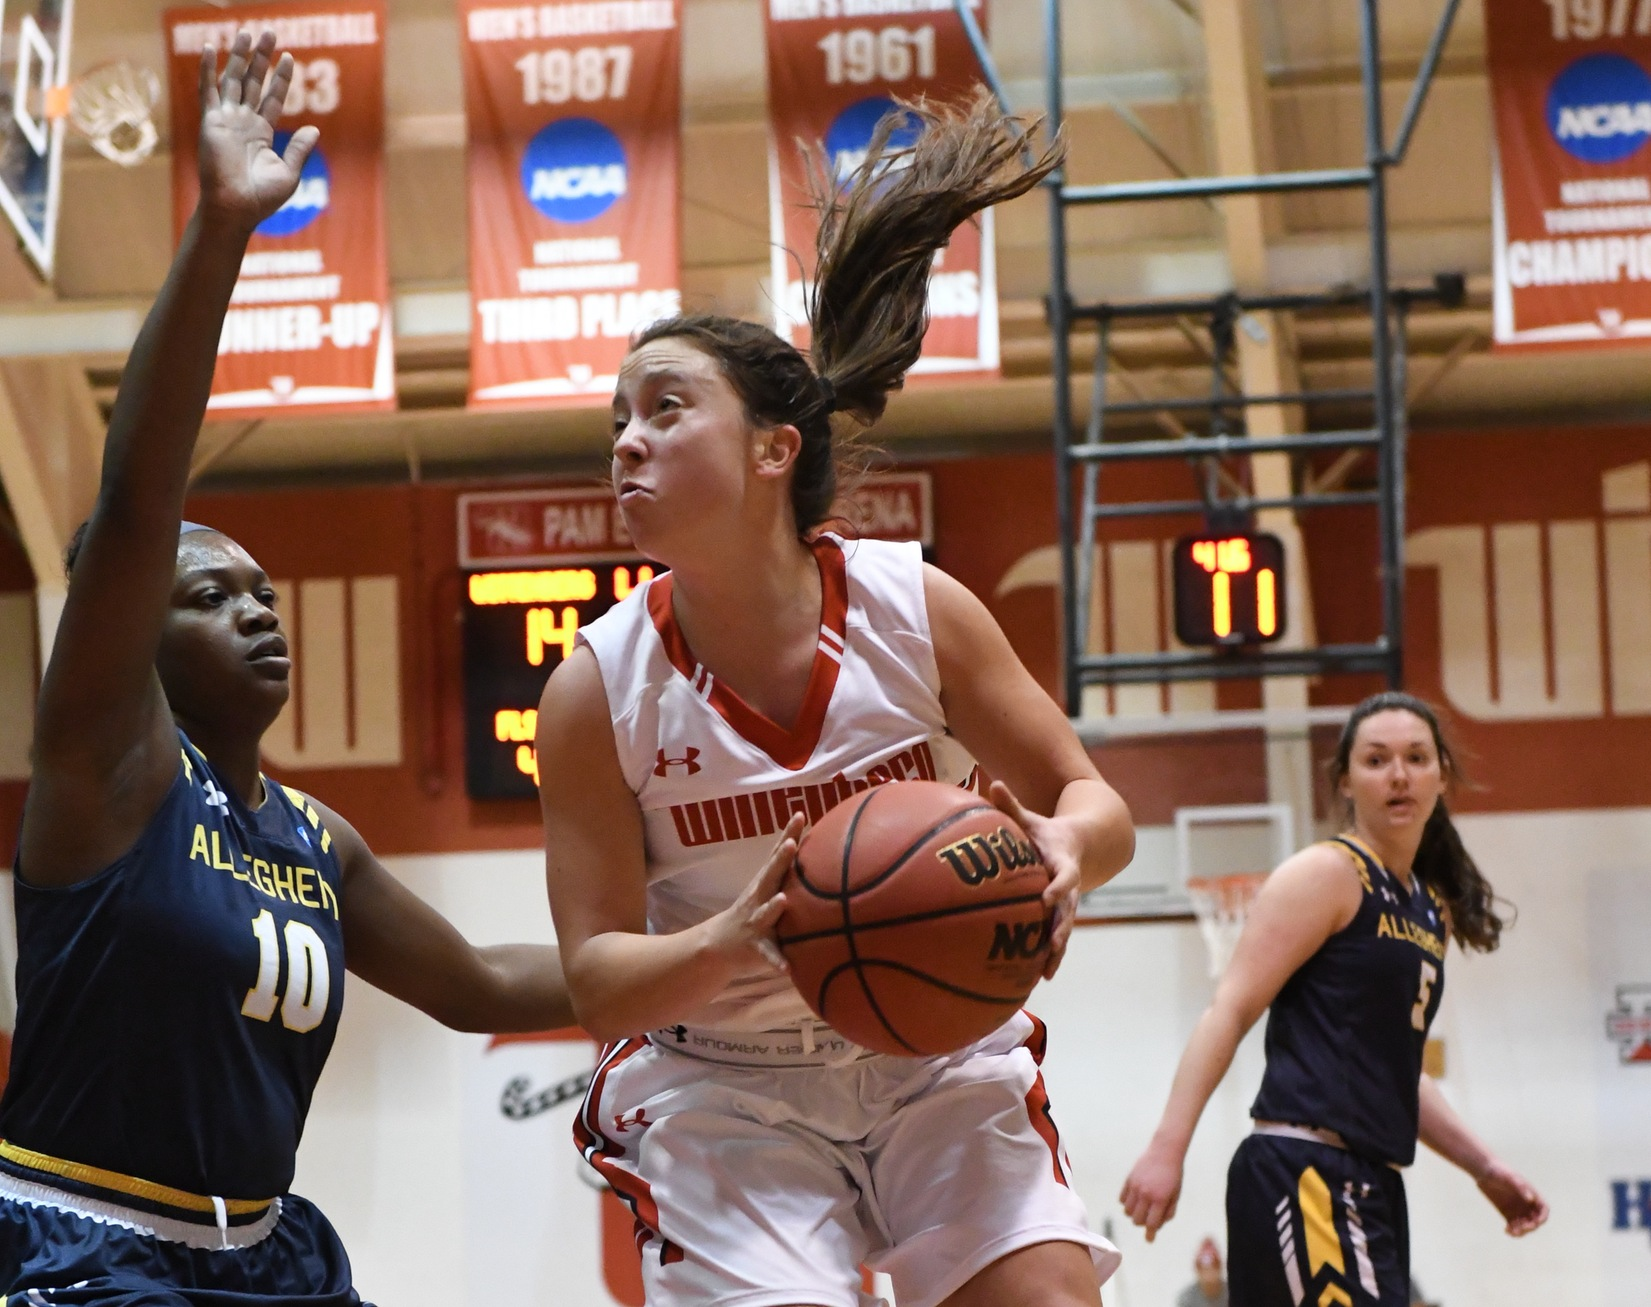 Women's Basketball Suffers Late Loss To Kenyon